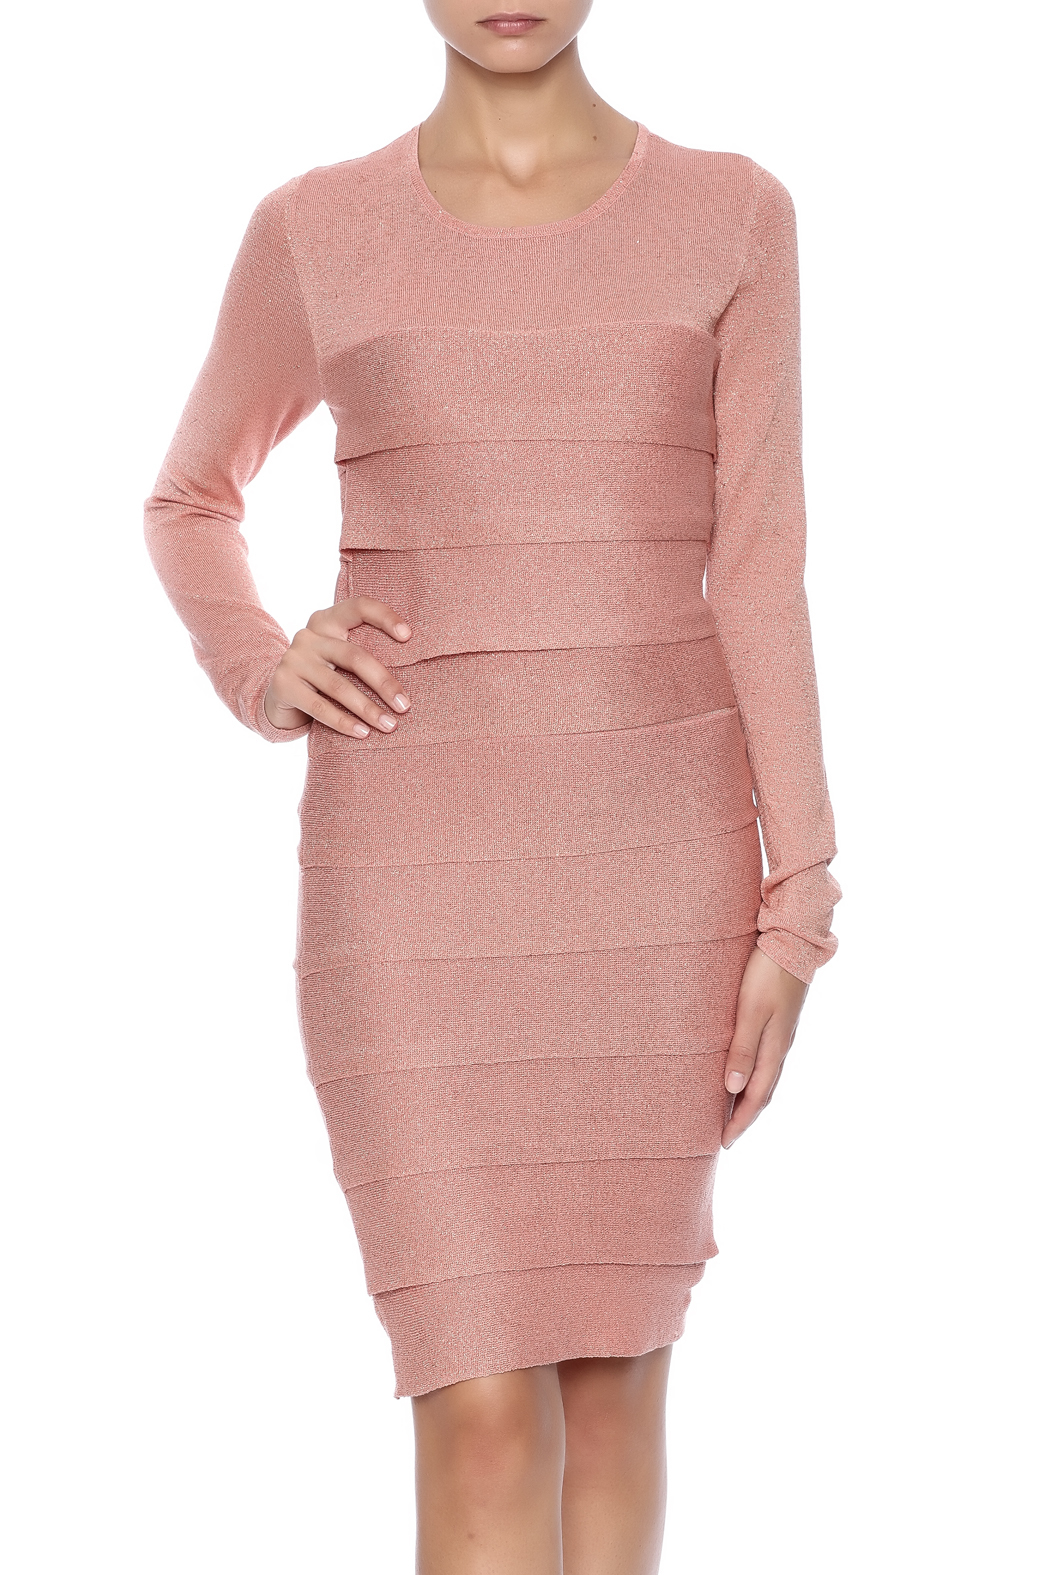 BCBG Max Azria Mariah Dress - Main Image